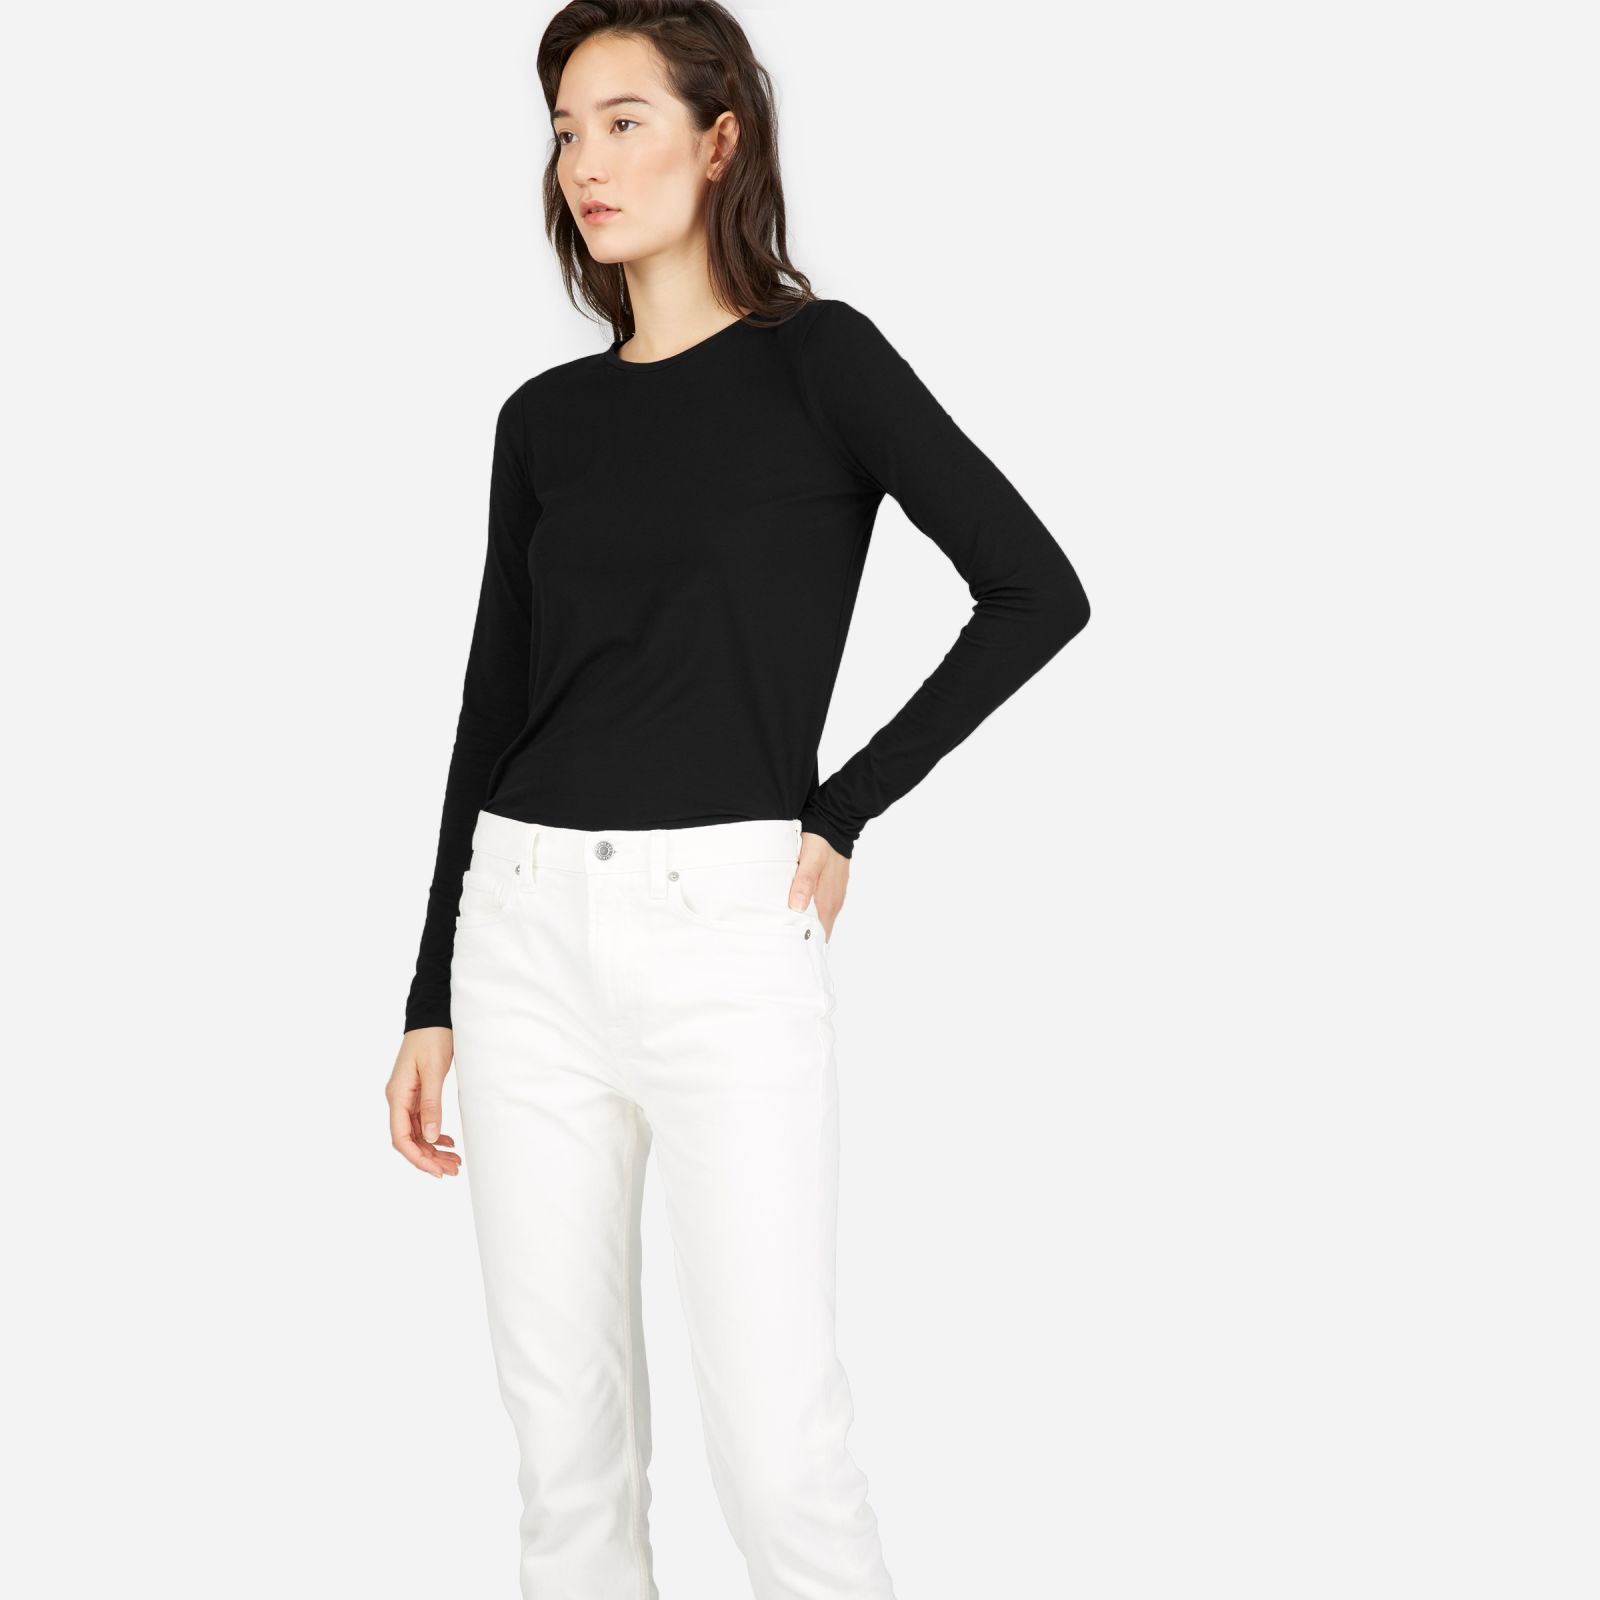 women's slim cotton long-sleeve crew sweater by everlane in black, size xl